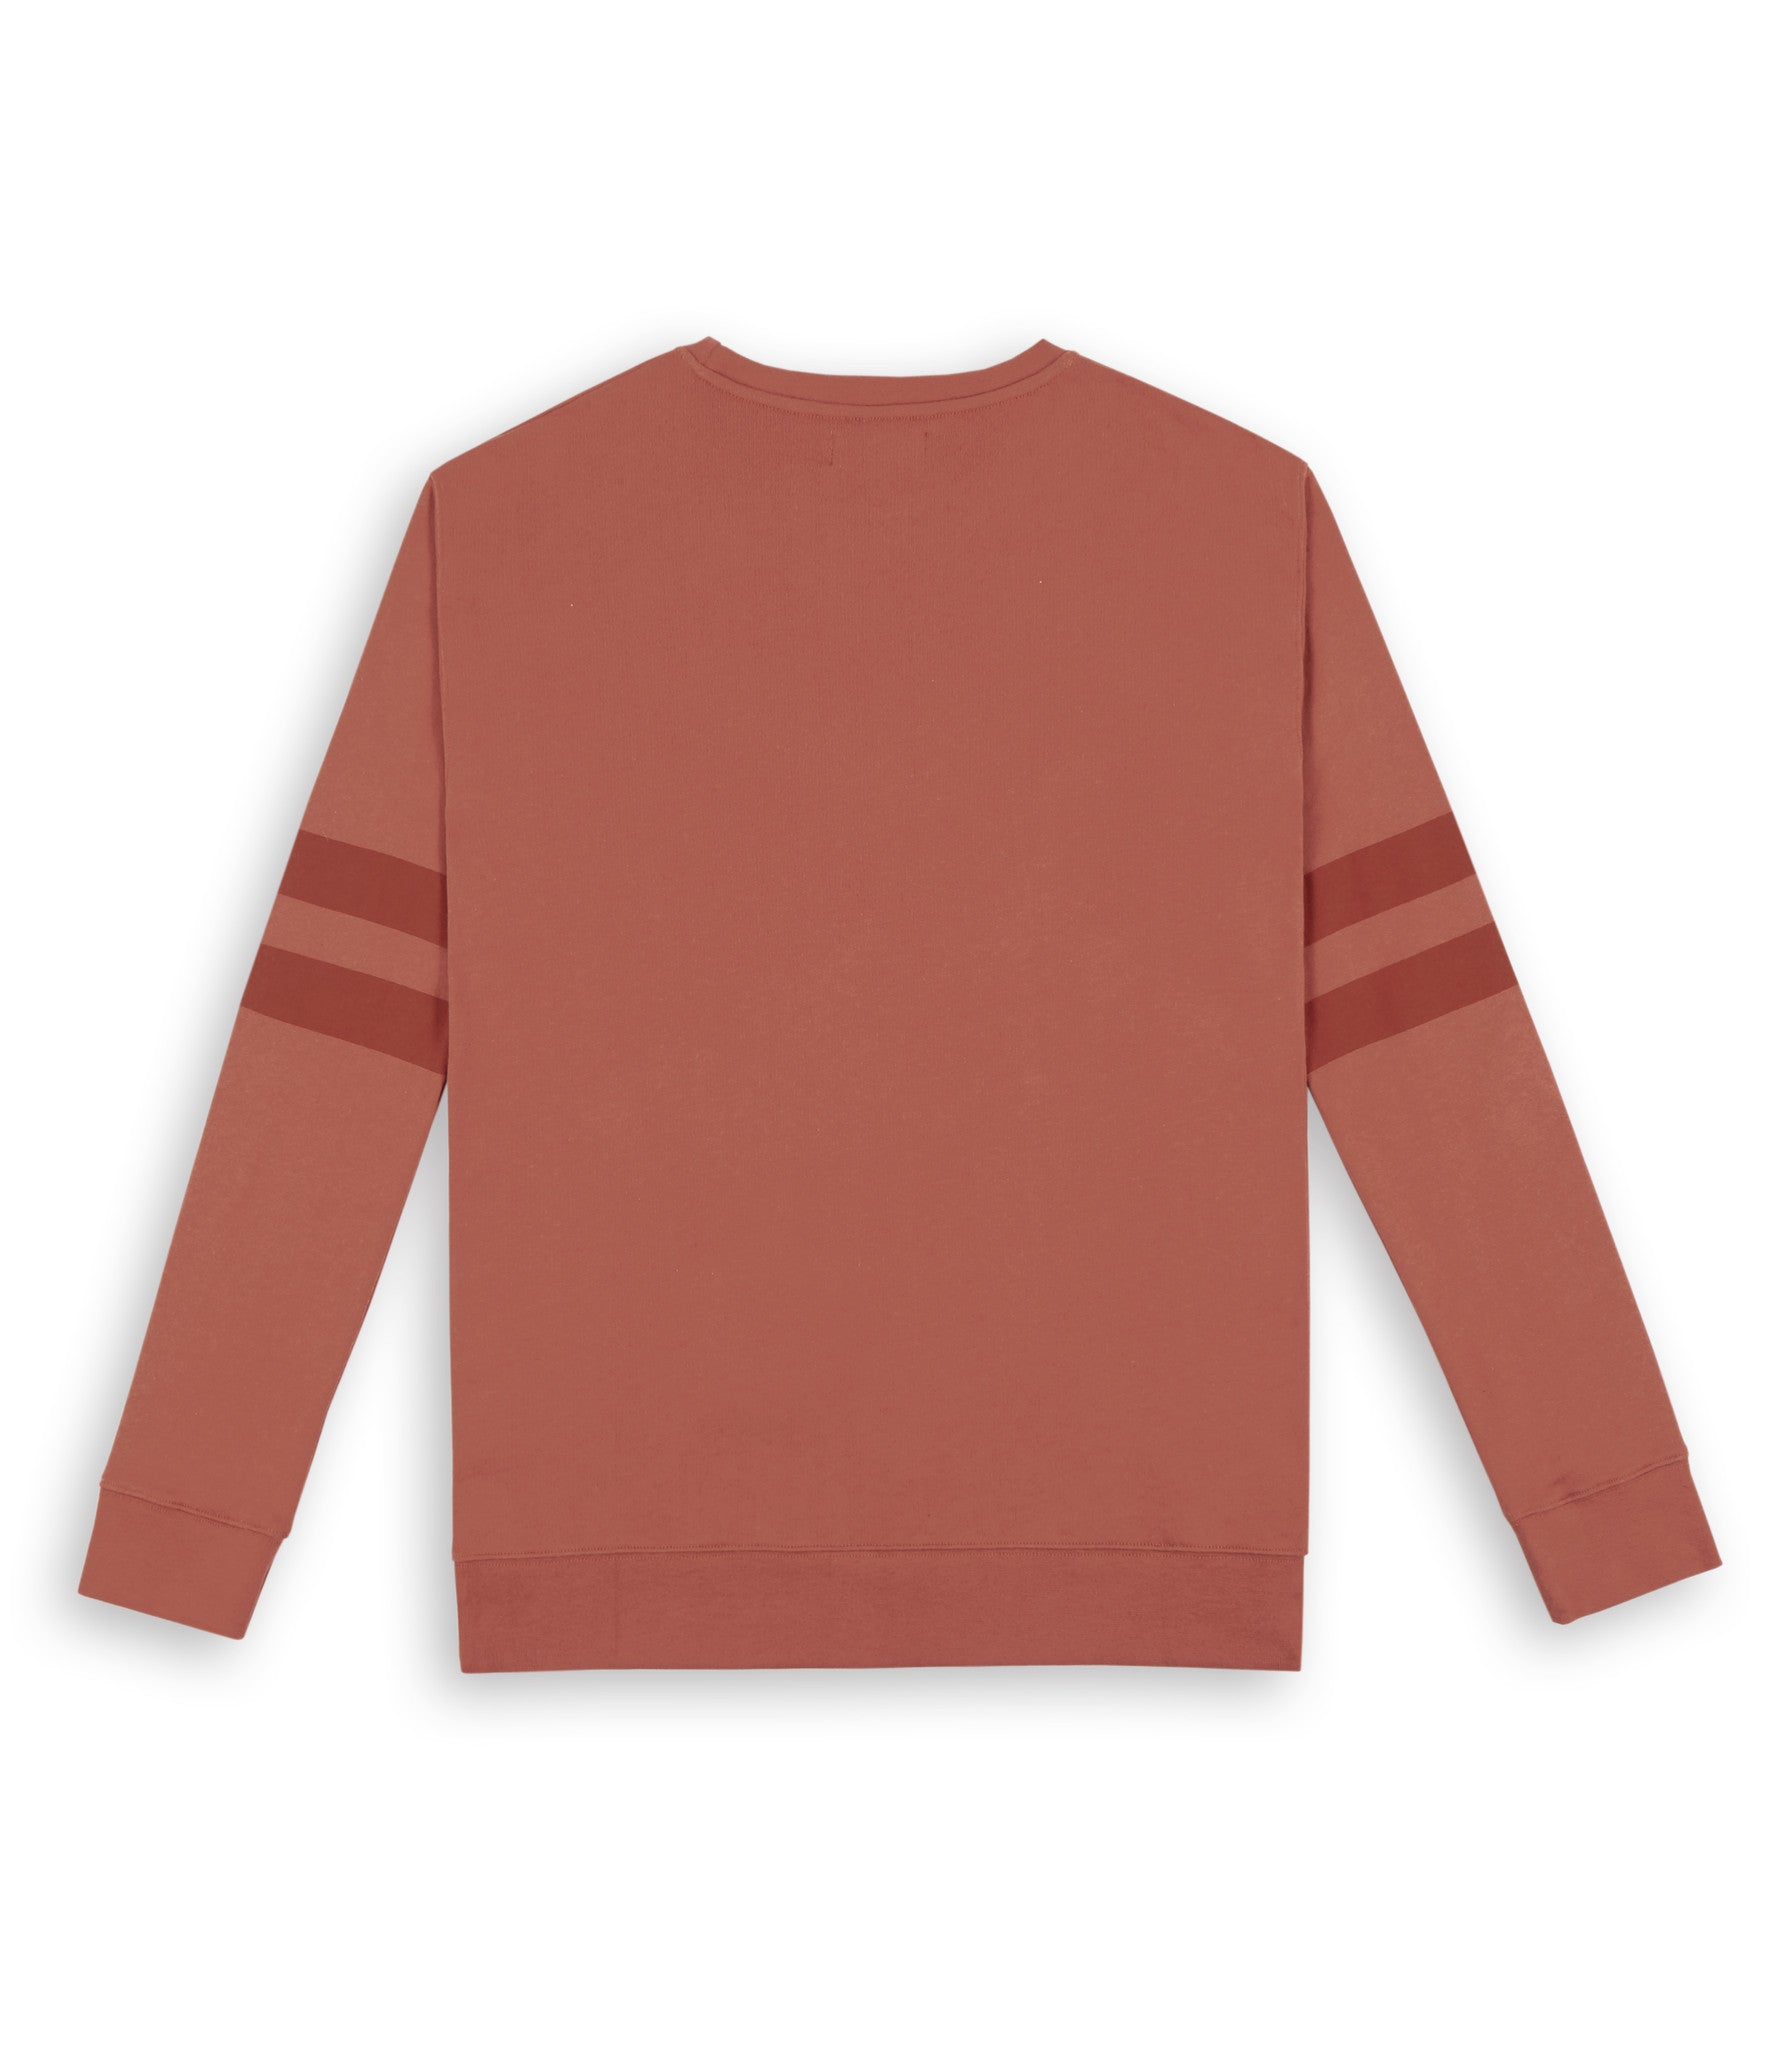 SW400 Tonal Print Sweatshirt - Rust - underated london - underatedco - 4